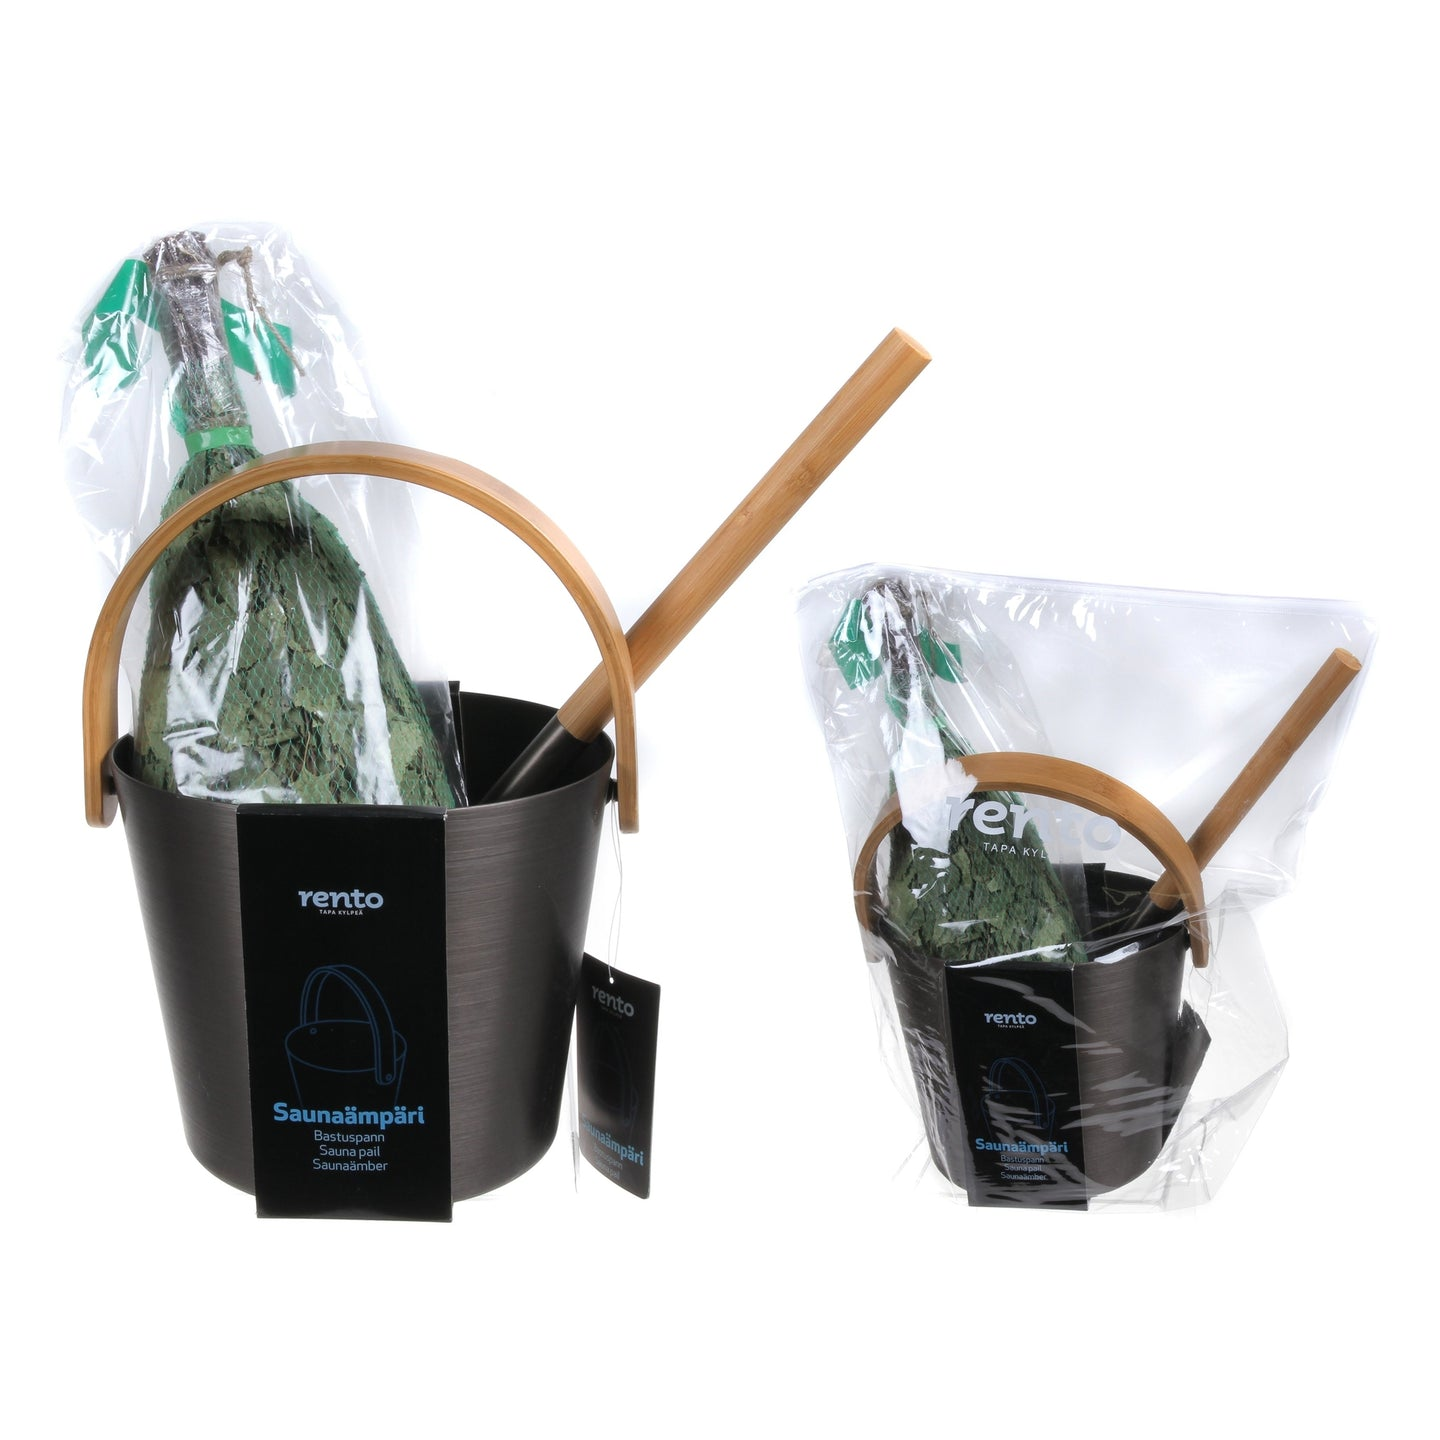 Rento Black Anodised Aluminium Sauna Set - Sauna Ladle, Pail & Whisk  Sauna Accessories Set Finnmark Sauna